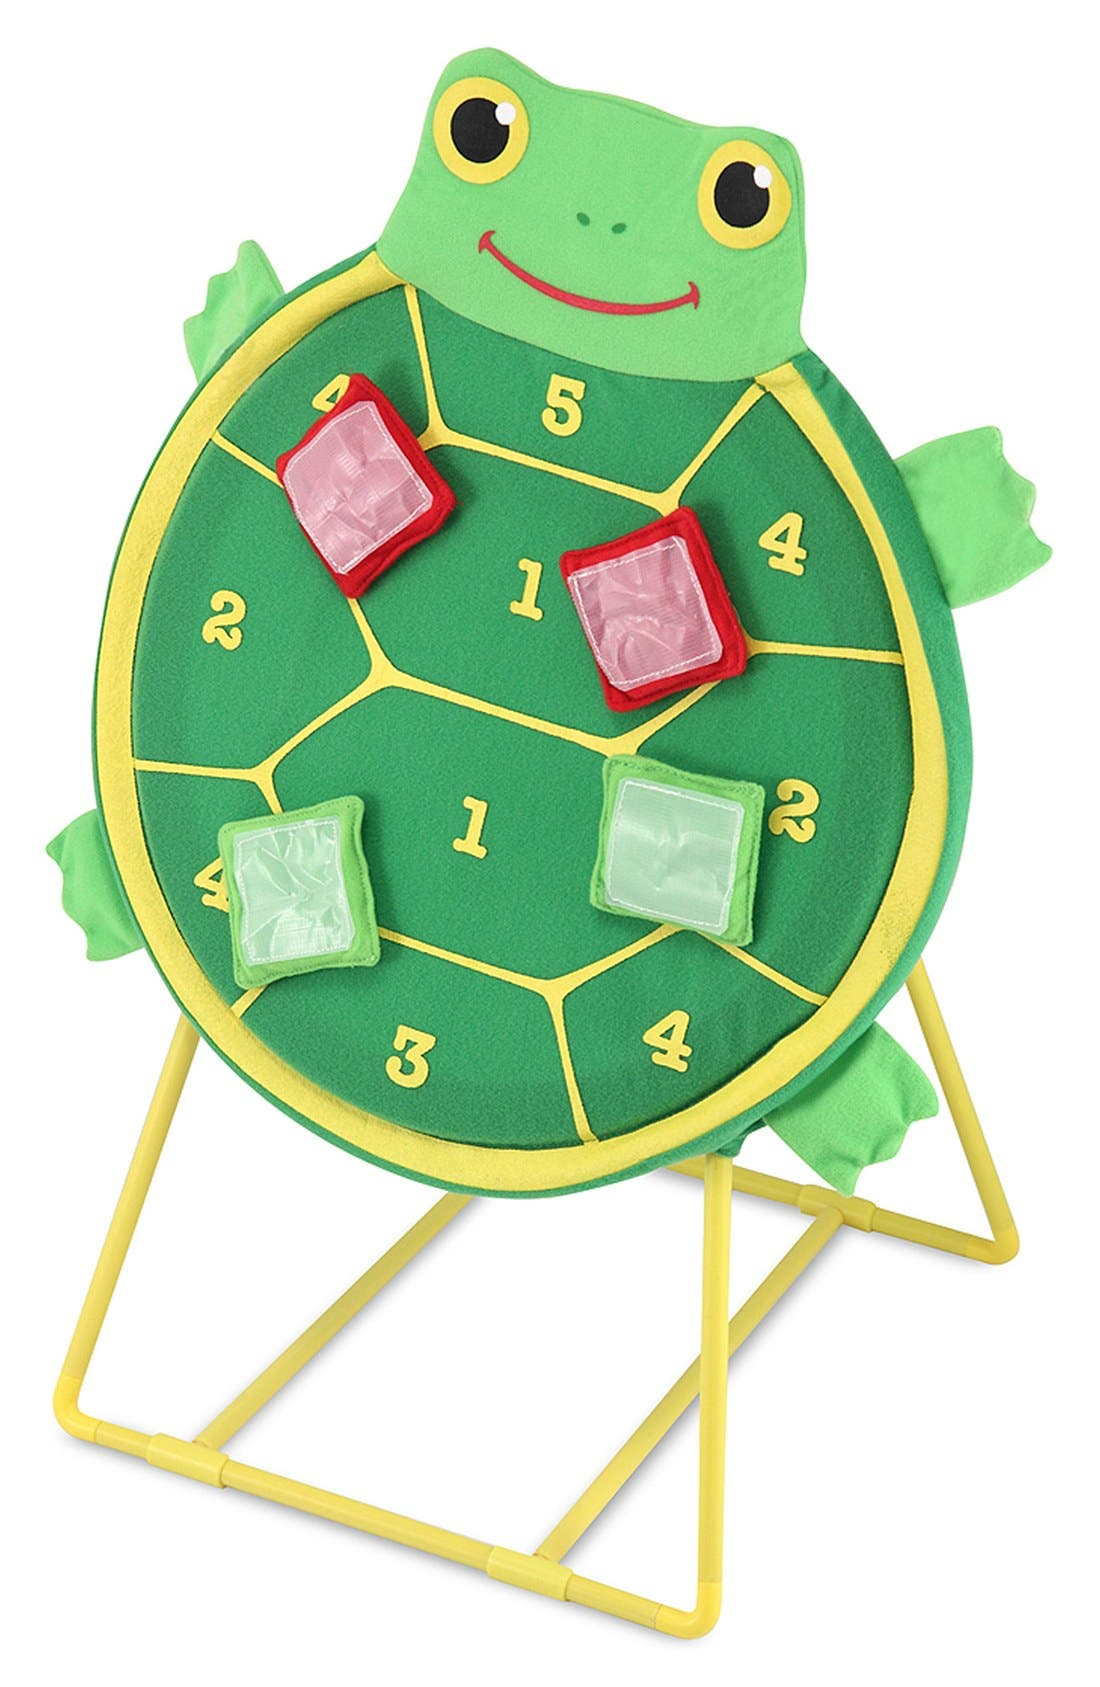 'Tootle Turtle' Target Game,                         Main,                         color, 300